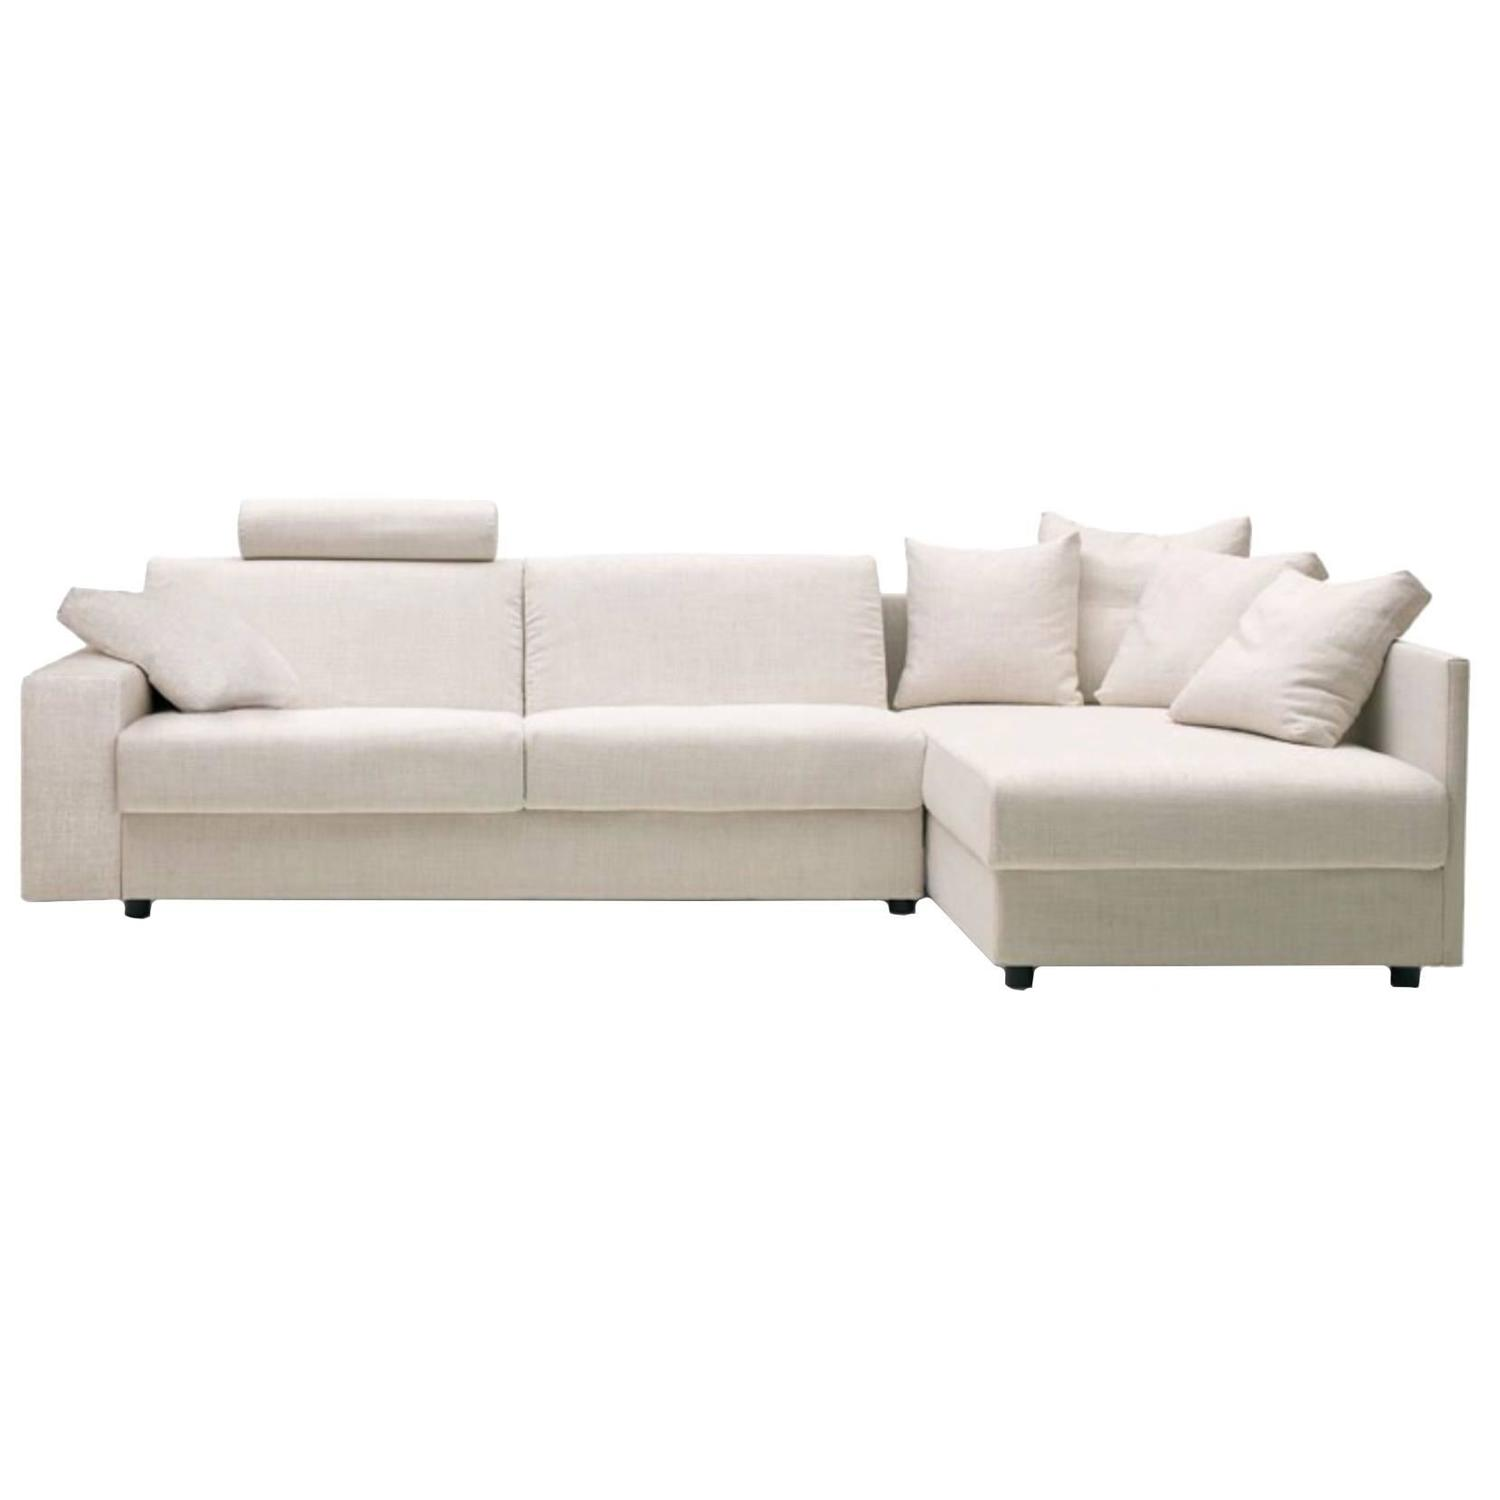 Modern italian sofa bed sectional sb41 fabric new made for Modern sectional sofas